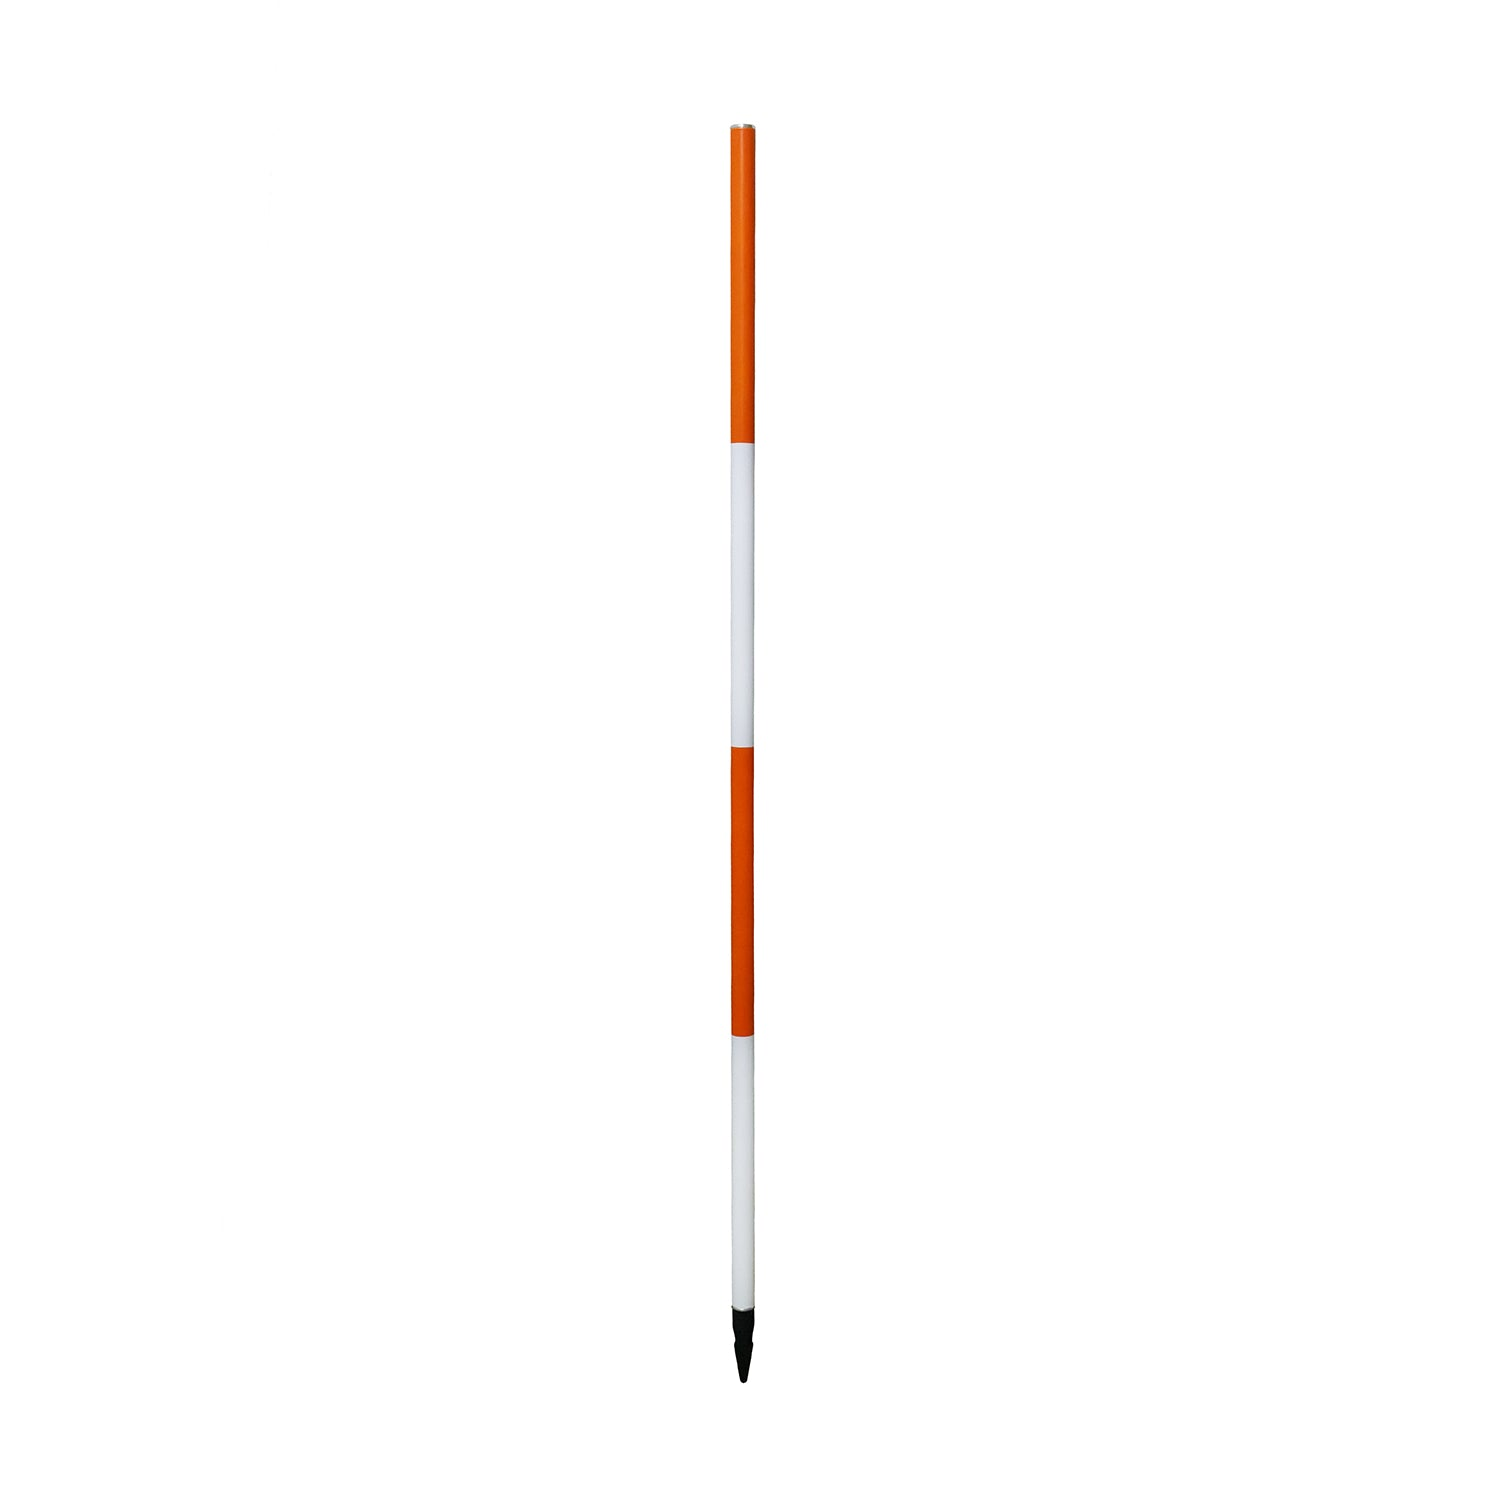 GeoMax 4 Ft Range Pole -Rods, Poles & Accessories- eGPS Solutions Inc.